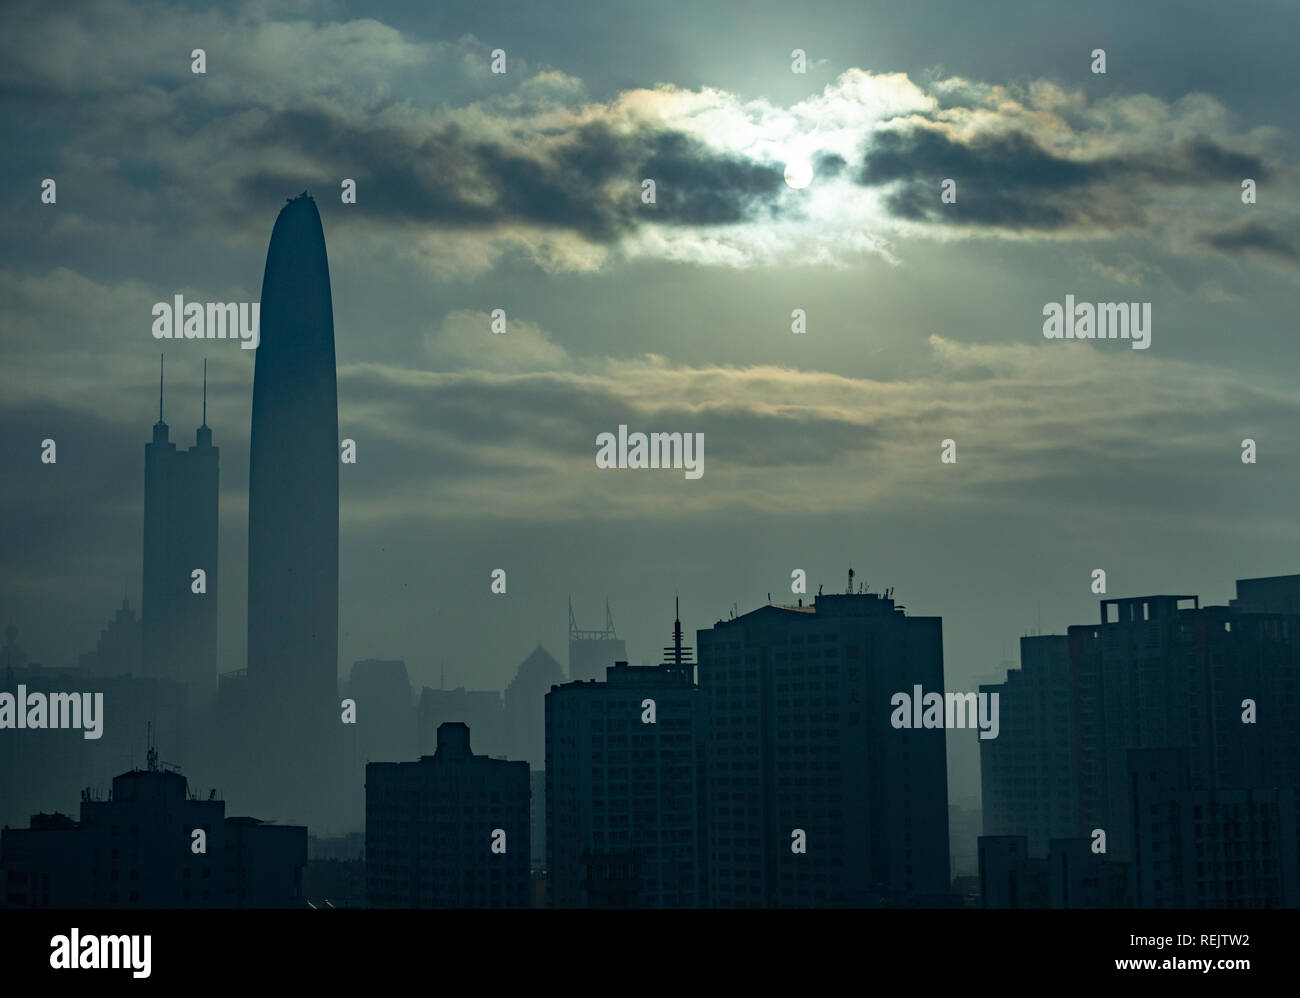 China - Stock Image